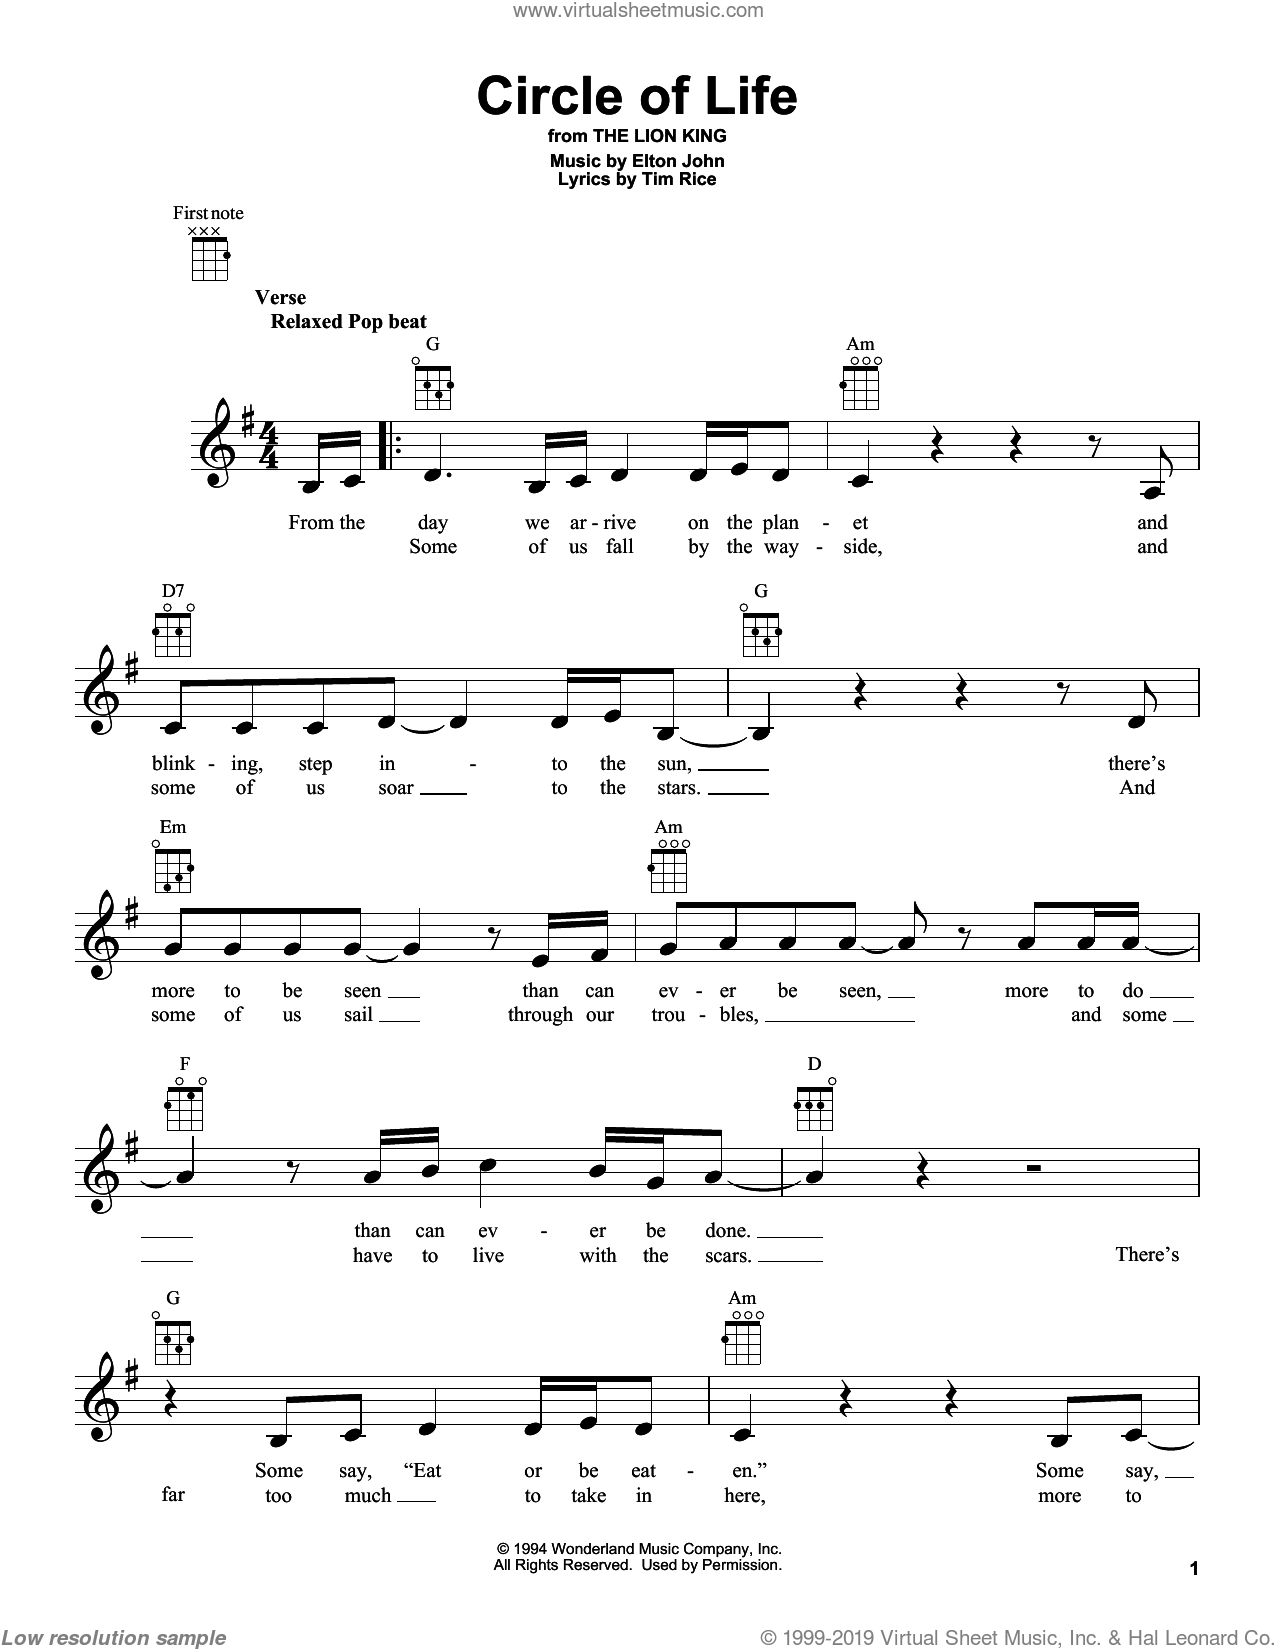 Circle Of Life sheet music for ukulele by Elton John and Tim Rice, intermediate skill level